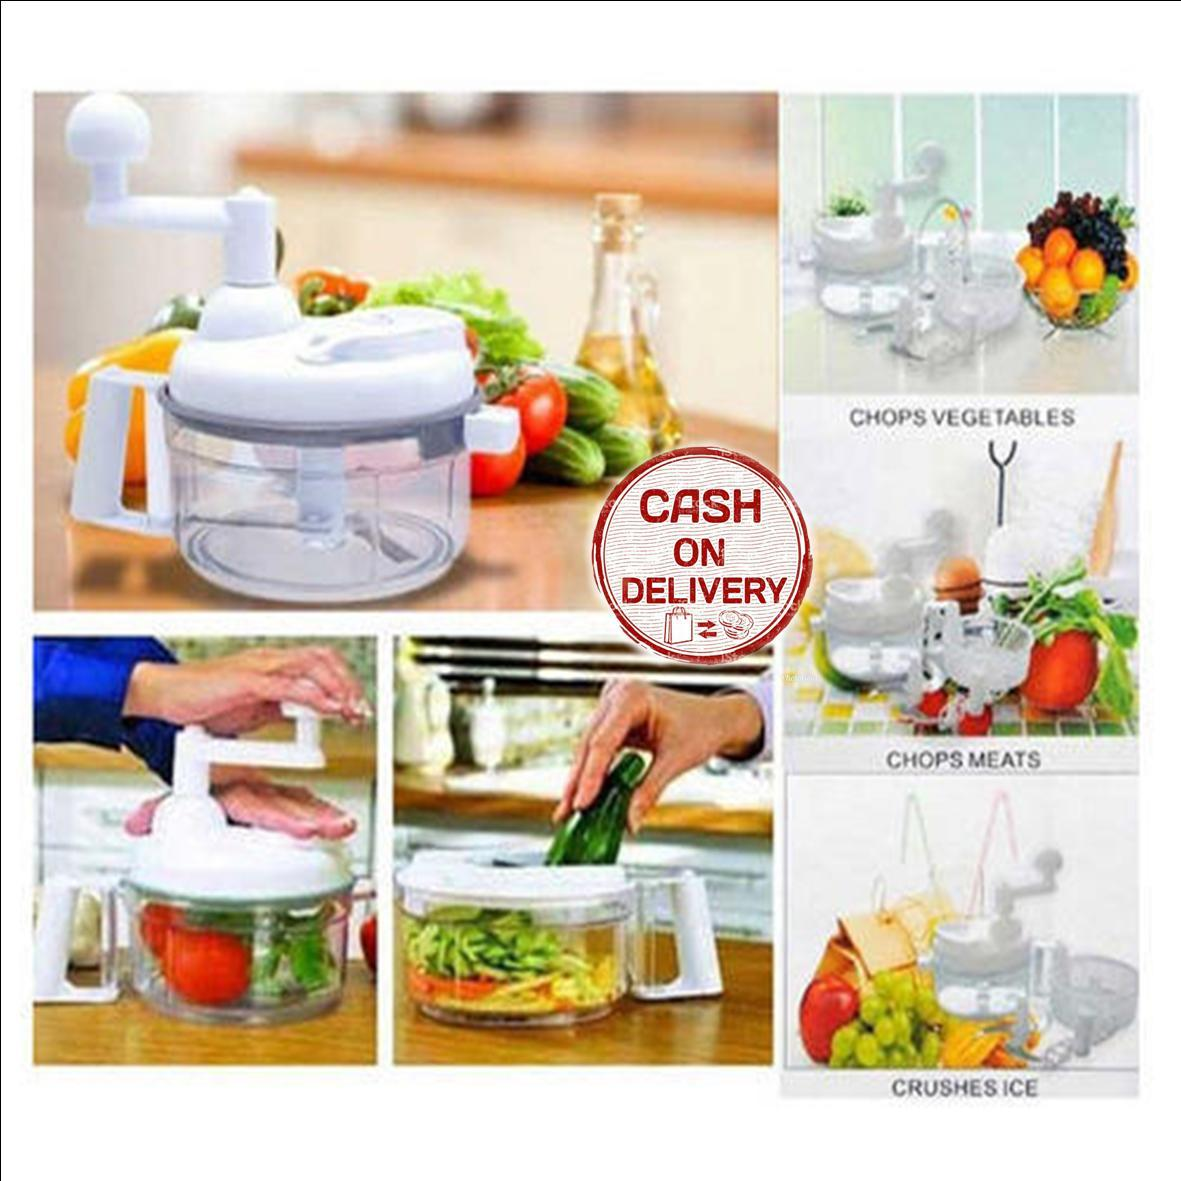 Kado Unik-- Swift Chopper Manual Food Processor / Alat Penggiling Sayuran / Blender Sayur Tanpa Listrik / Alat Penghalus Sayuran / Alat Potong Serbaguna / Swift Chopper Multipurpose / Penggiling Buah Sayur Murah